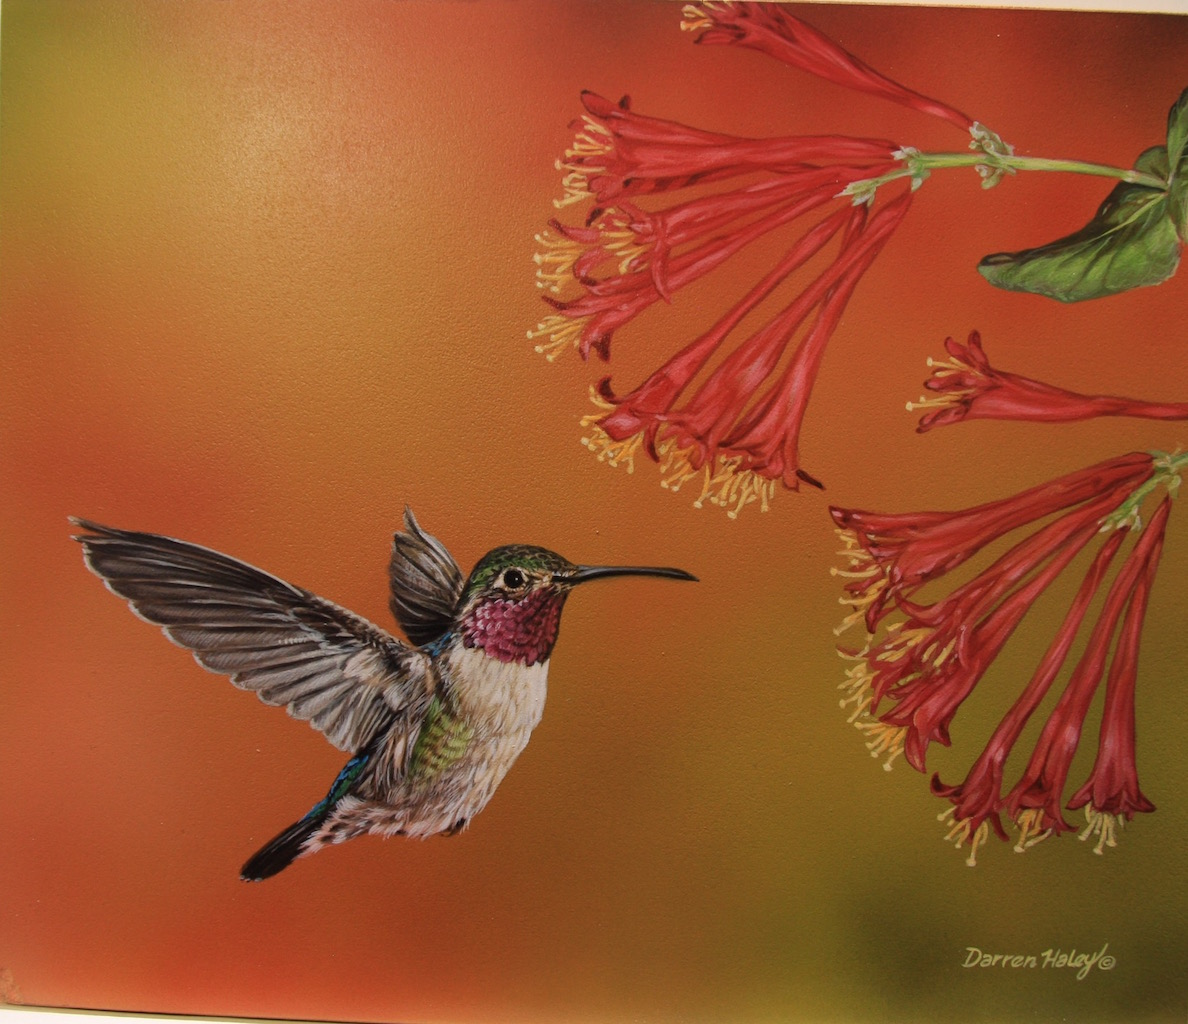 Darren Haley Ruby Throated Hummingbird